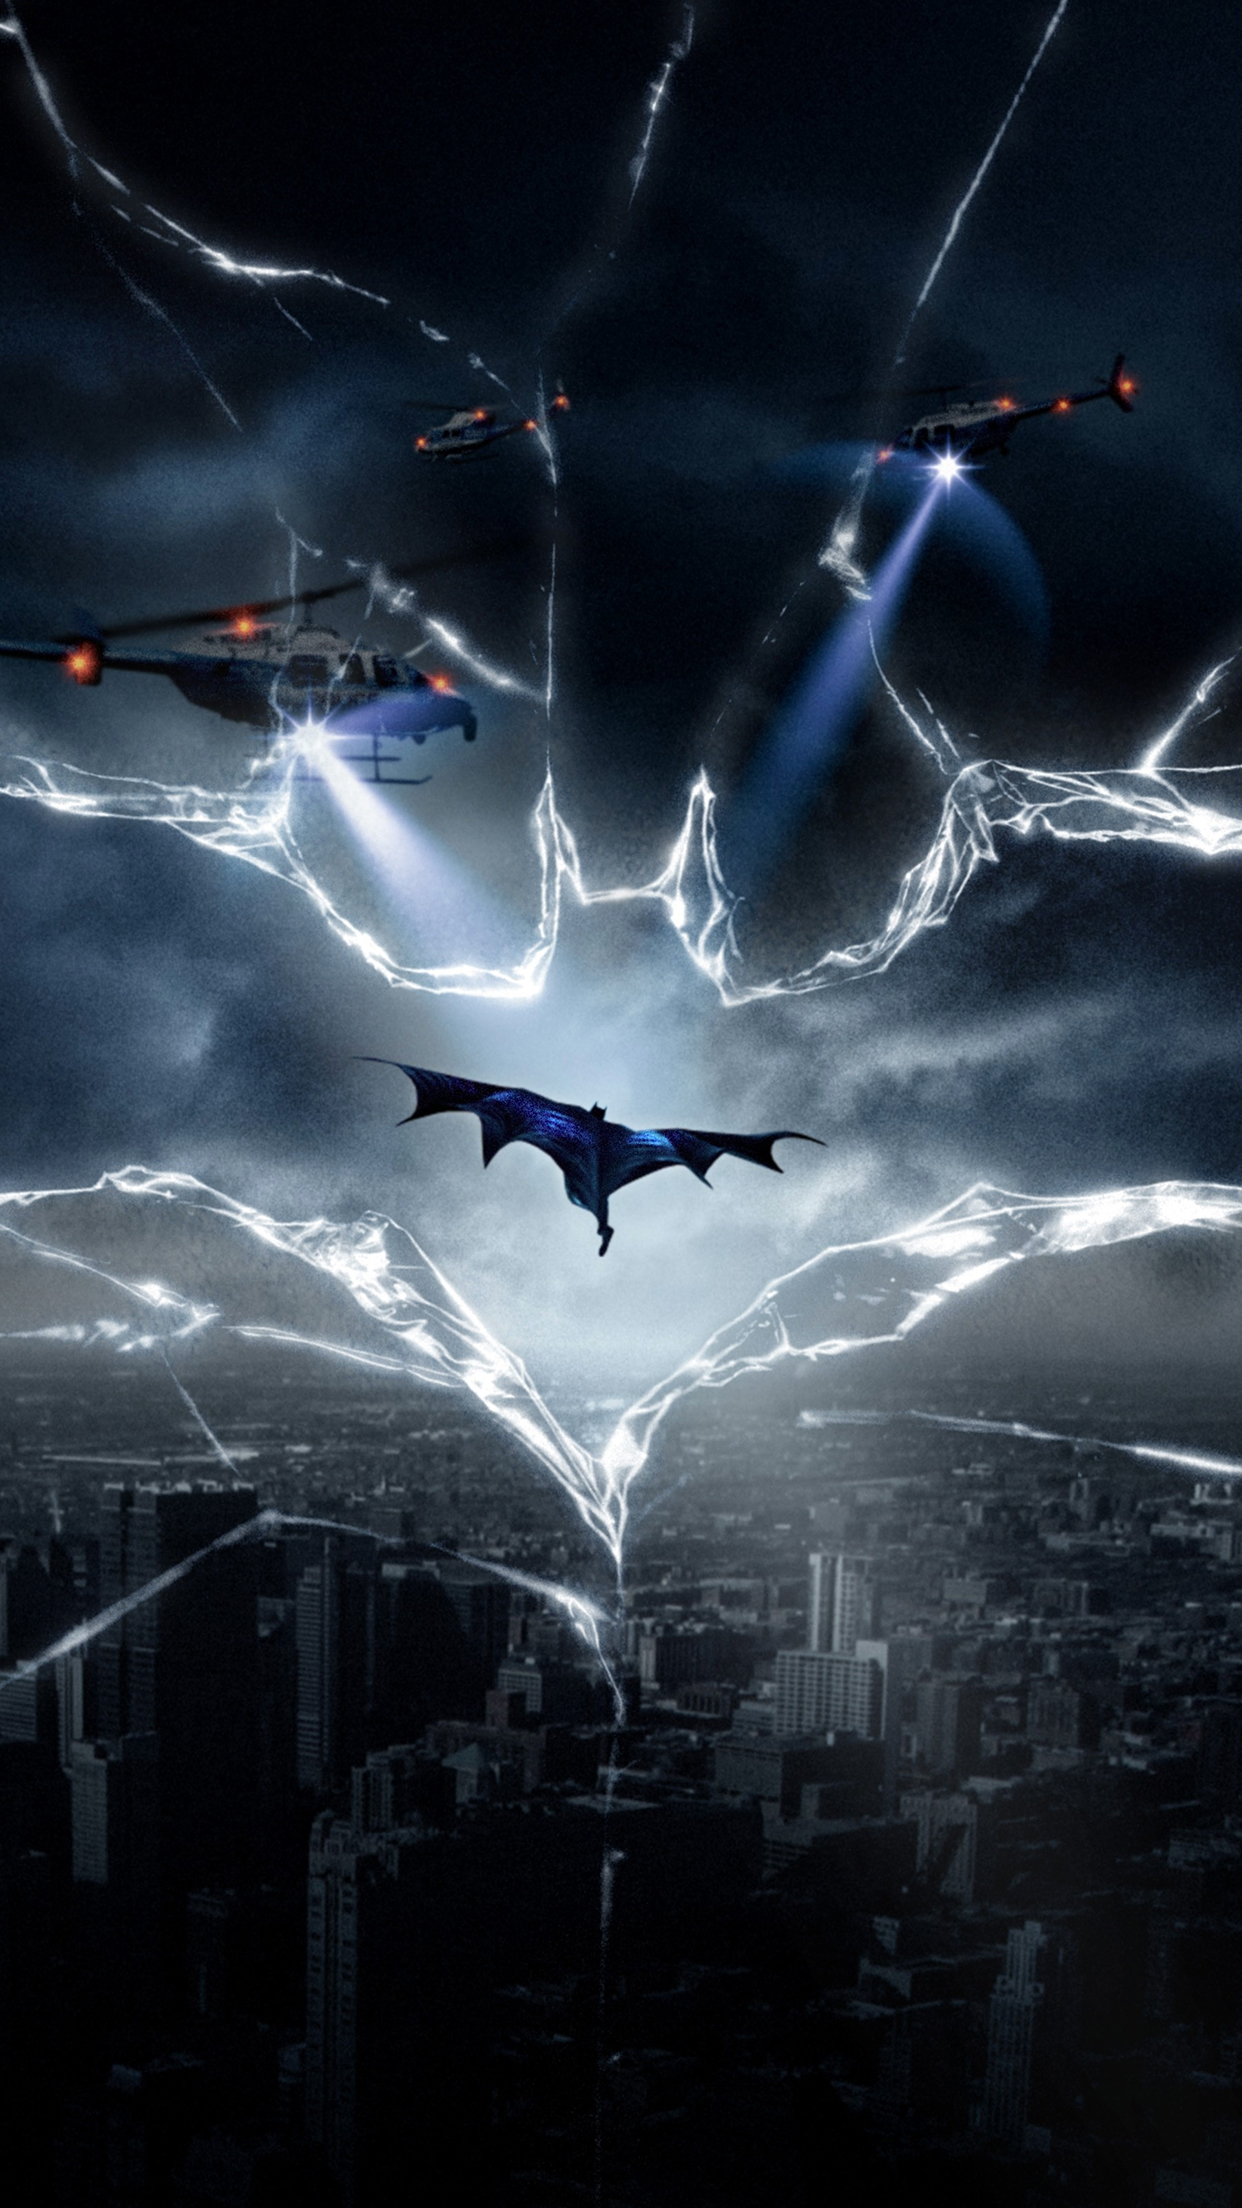 batman helicopters iPhone 3Wallpapers Parallax  Batman helicopters